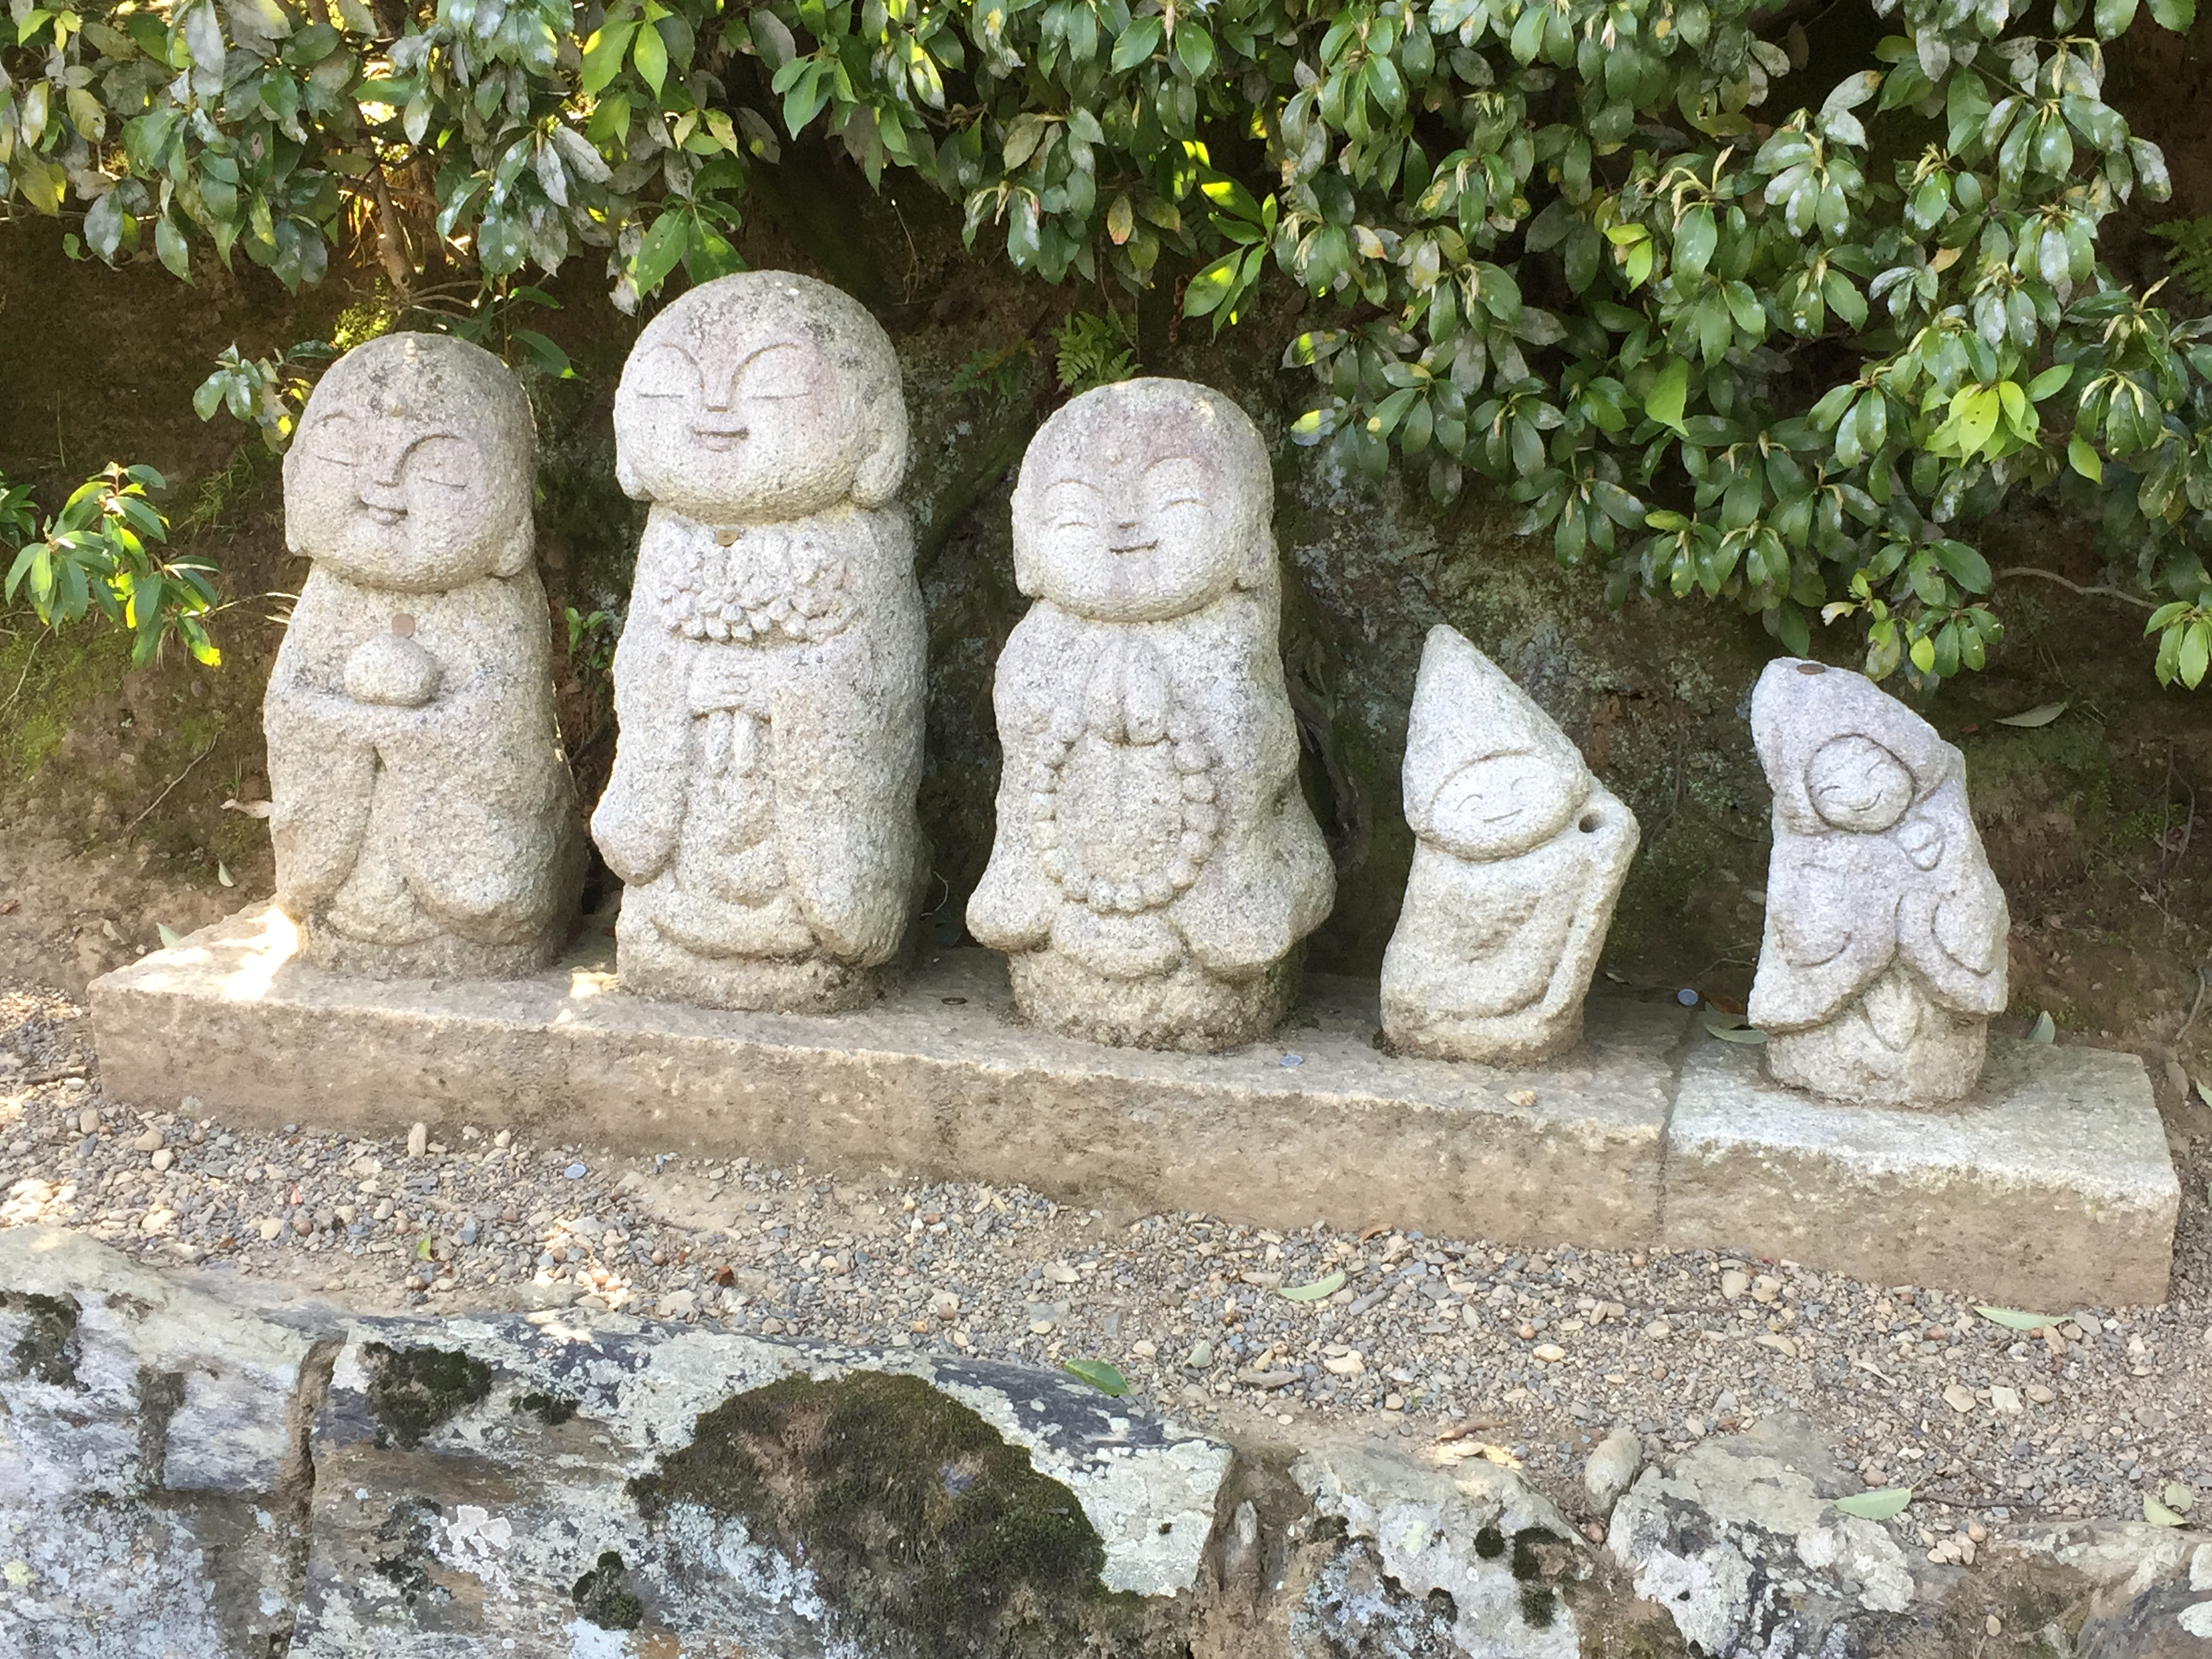 Small stone jizo statues on the side of a path in Arashiyama in Kyoto, in Japan.